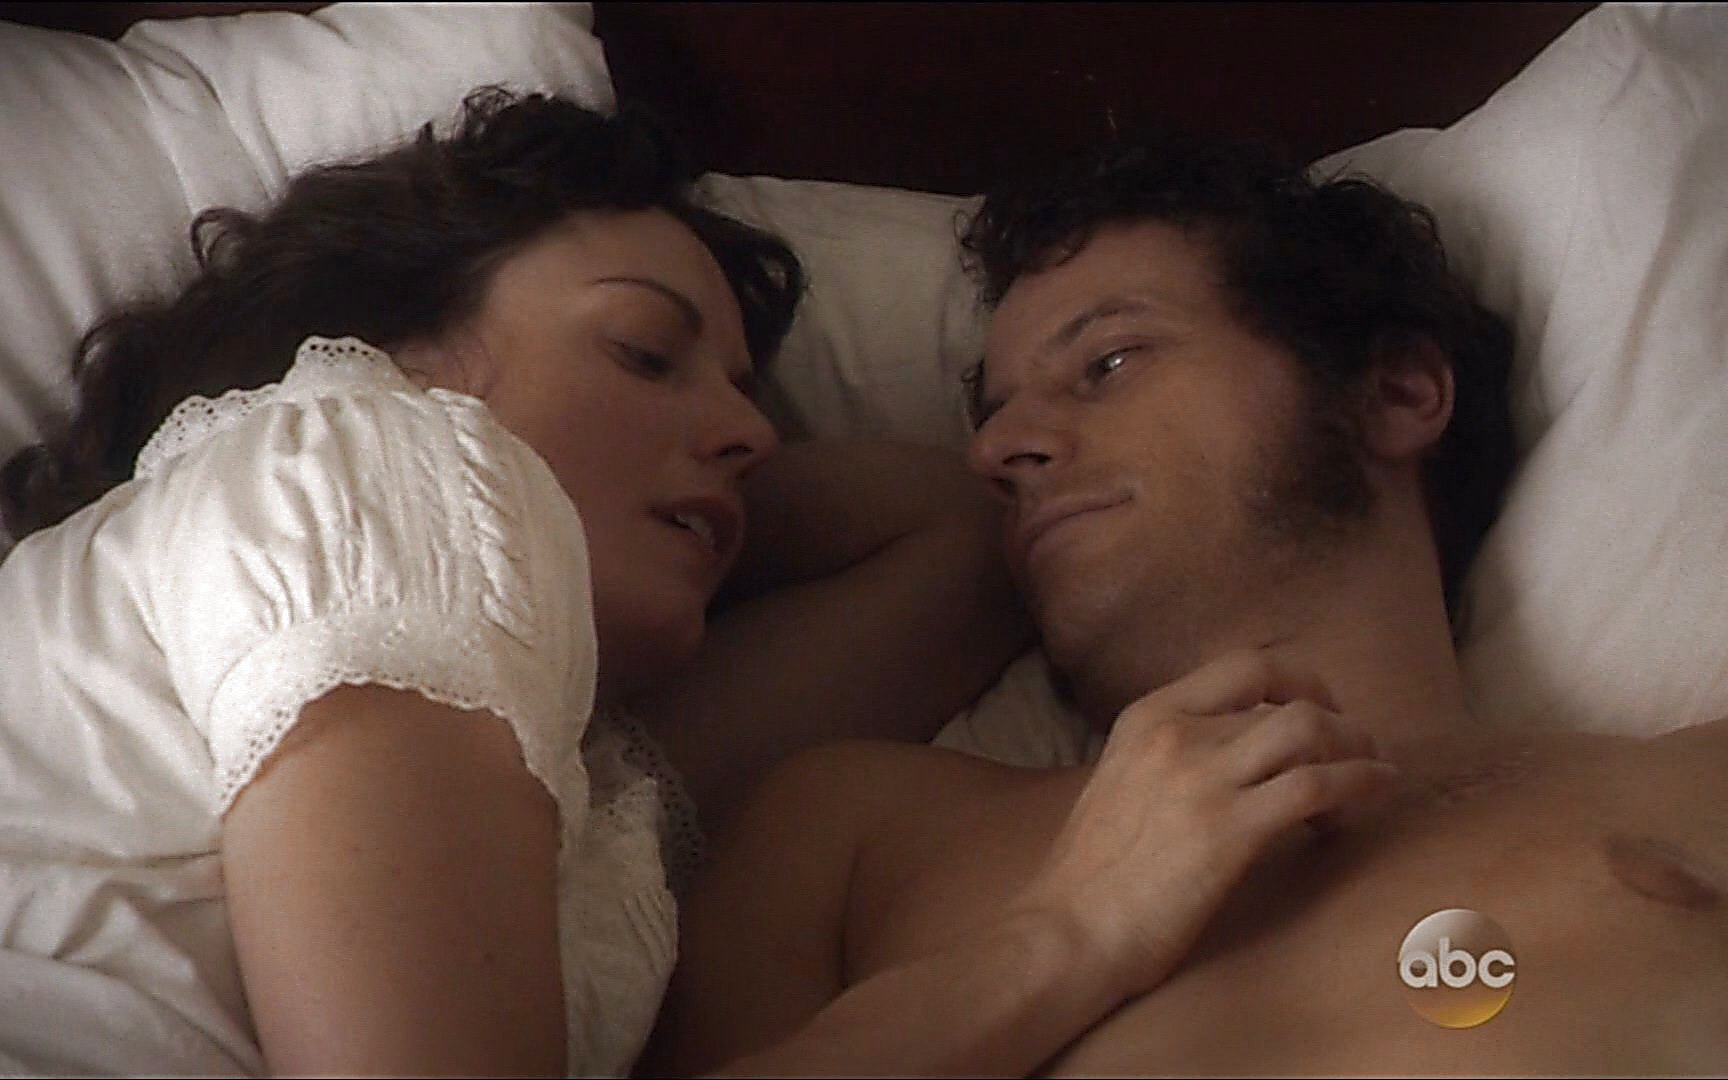 Ioan Gruffudd sexy shirtless scene January 3, 2015, 12am